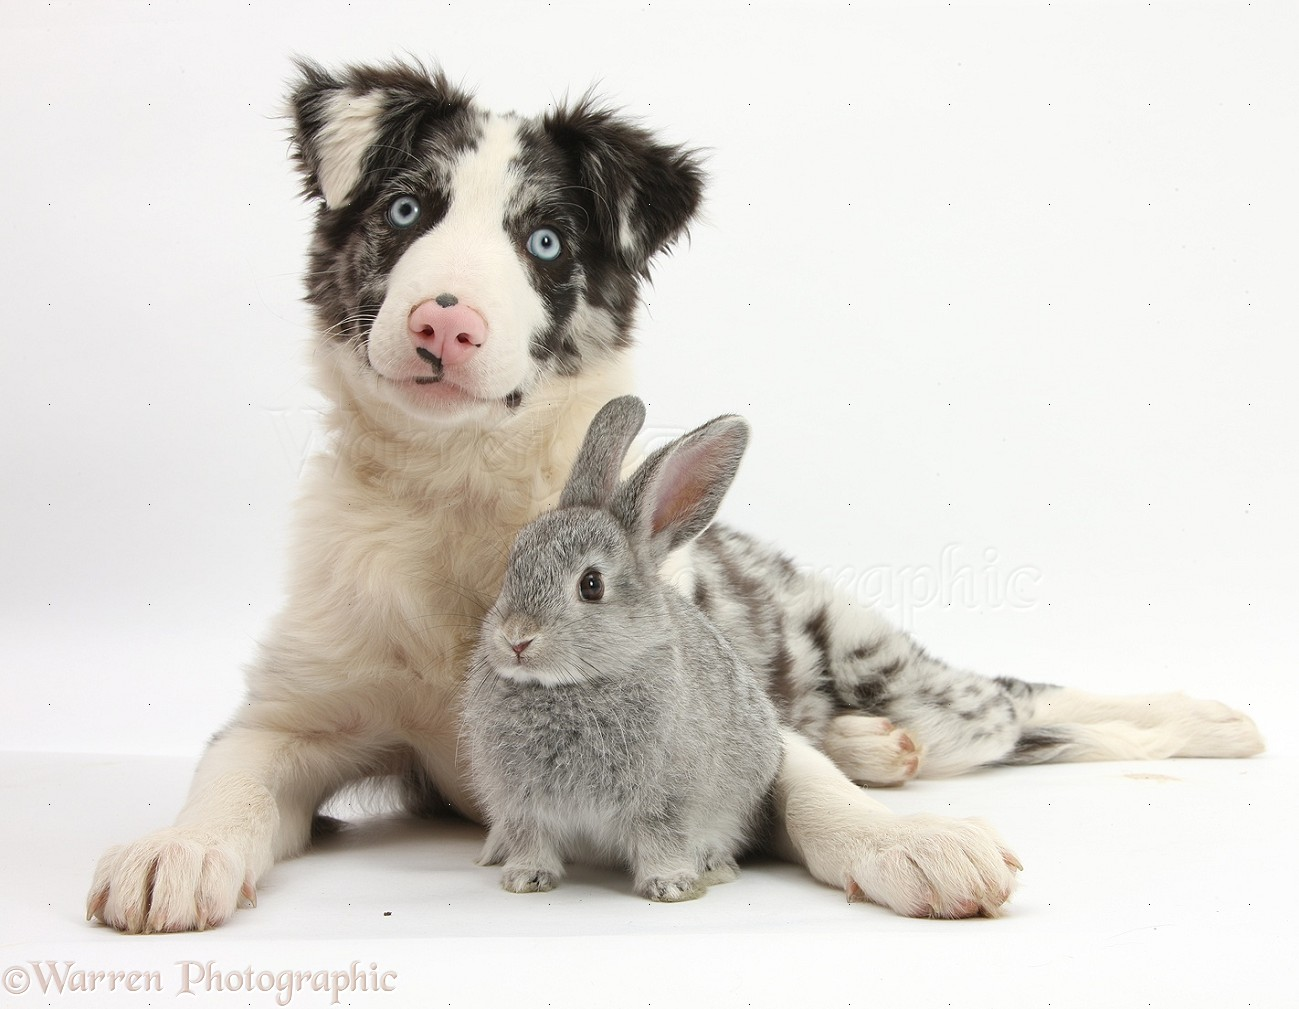 Wp29351 blue merle border collie puppy reef and silver baby rabbit